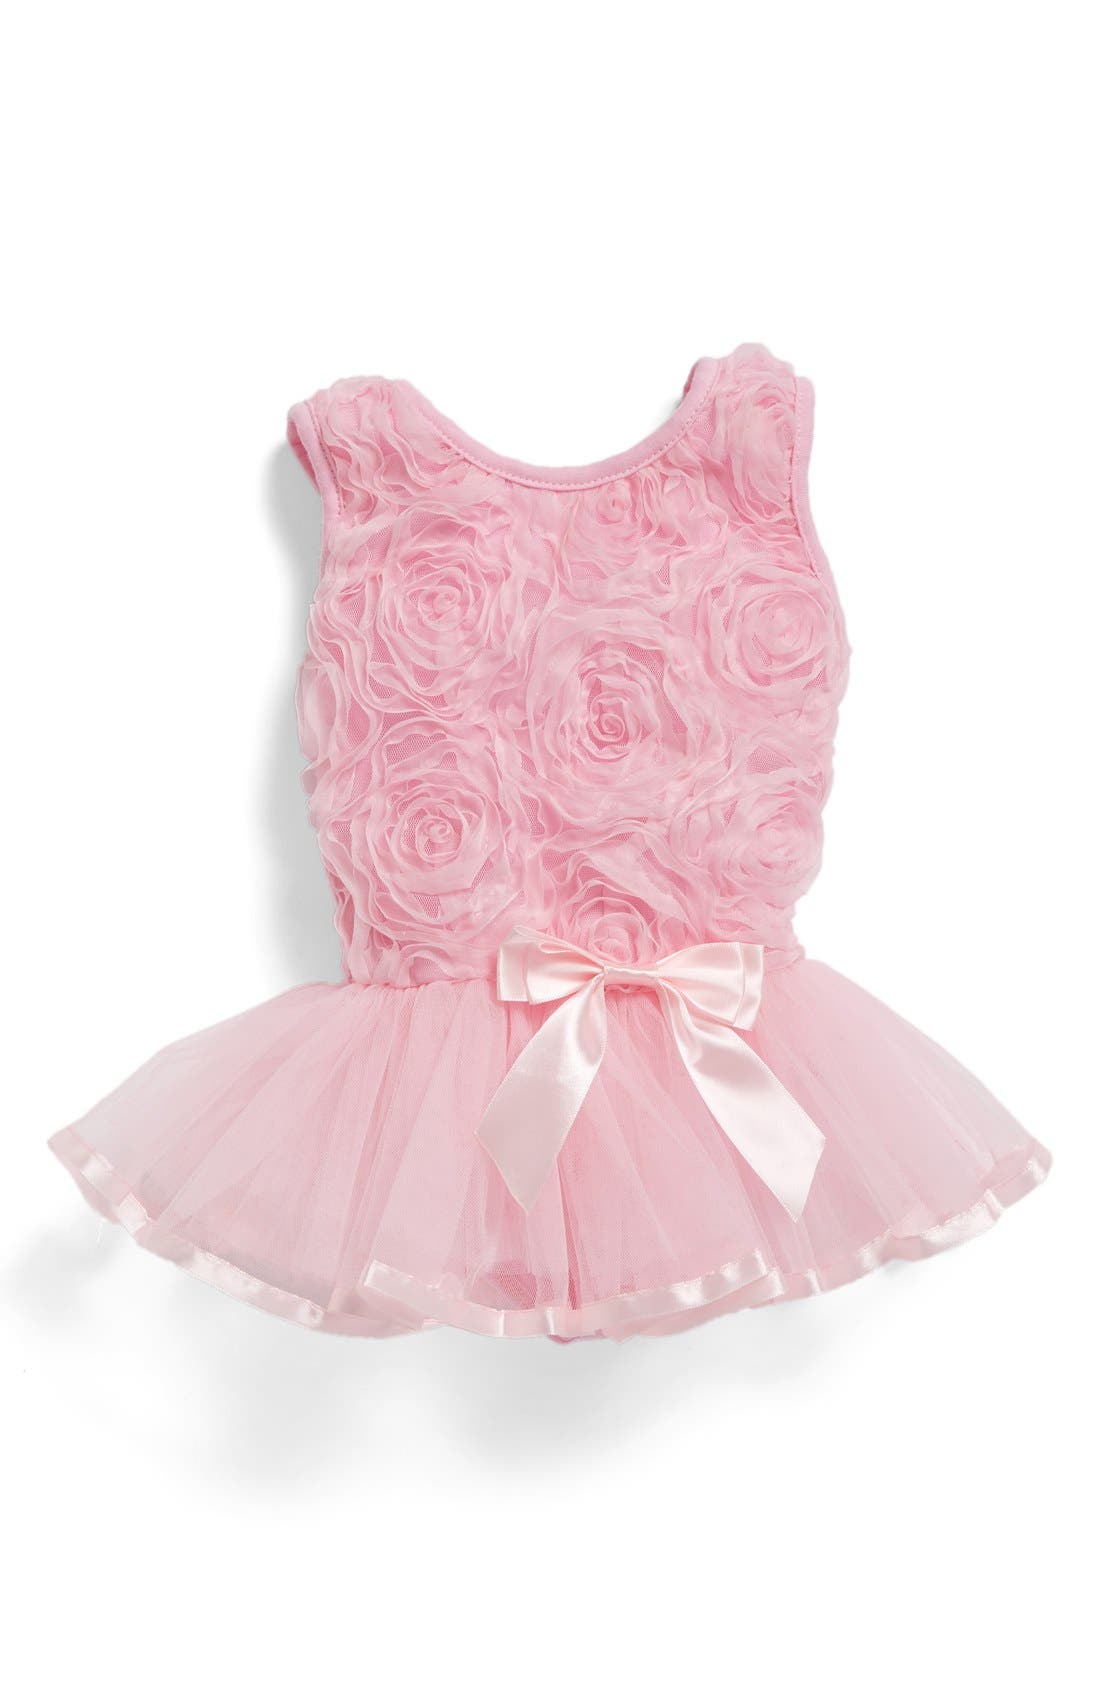 Alternate Image 1 Selected - Popatu Tutu Dance Dress (Baby Girls)